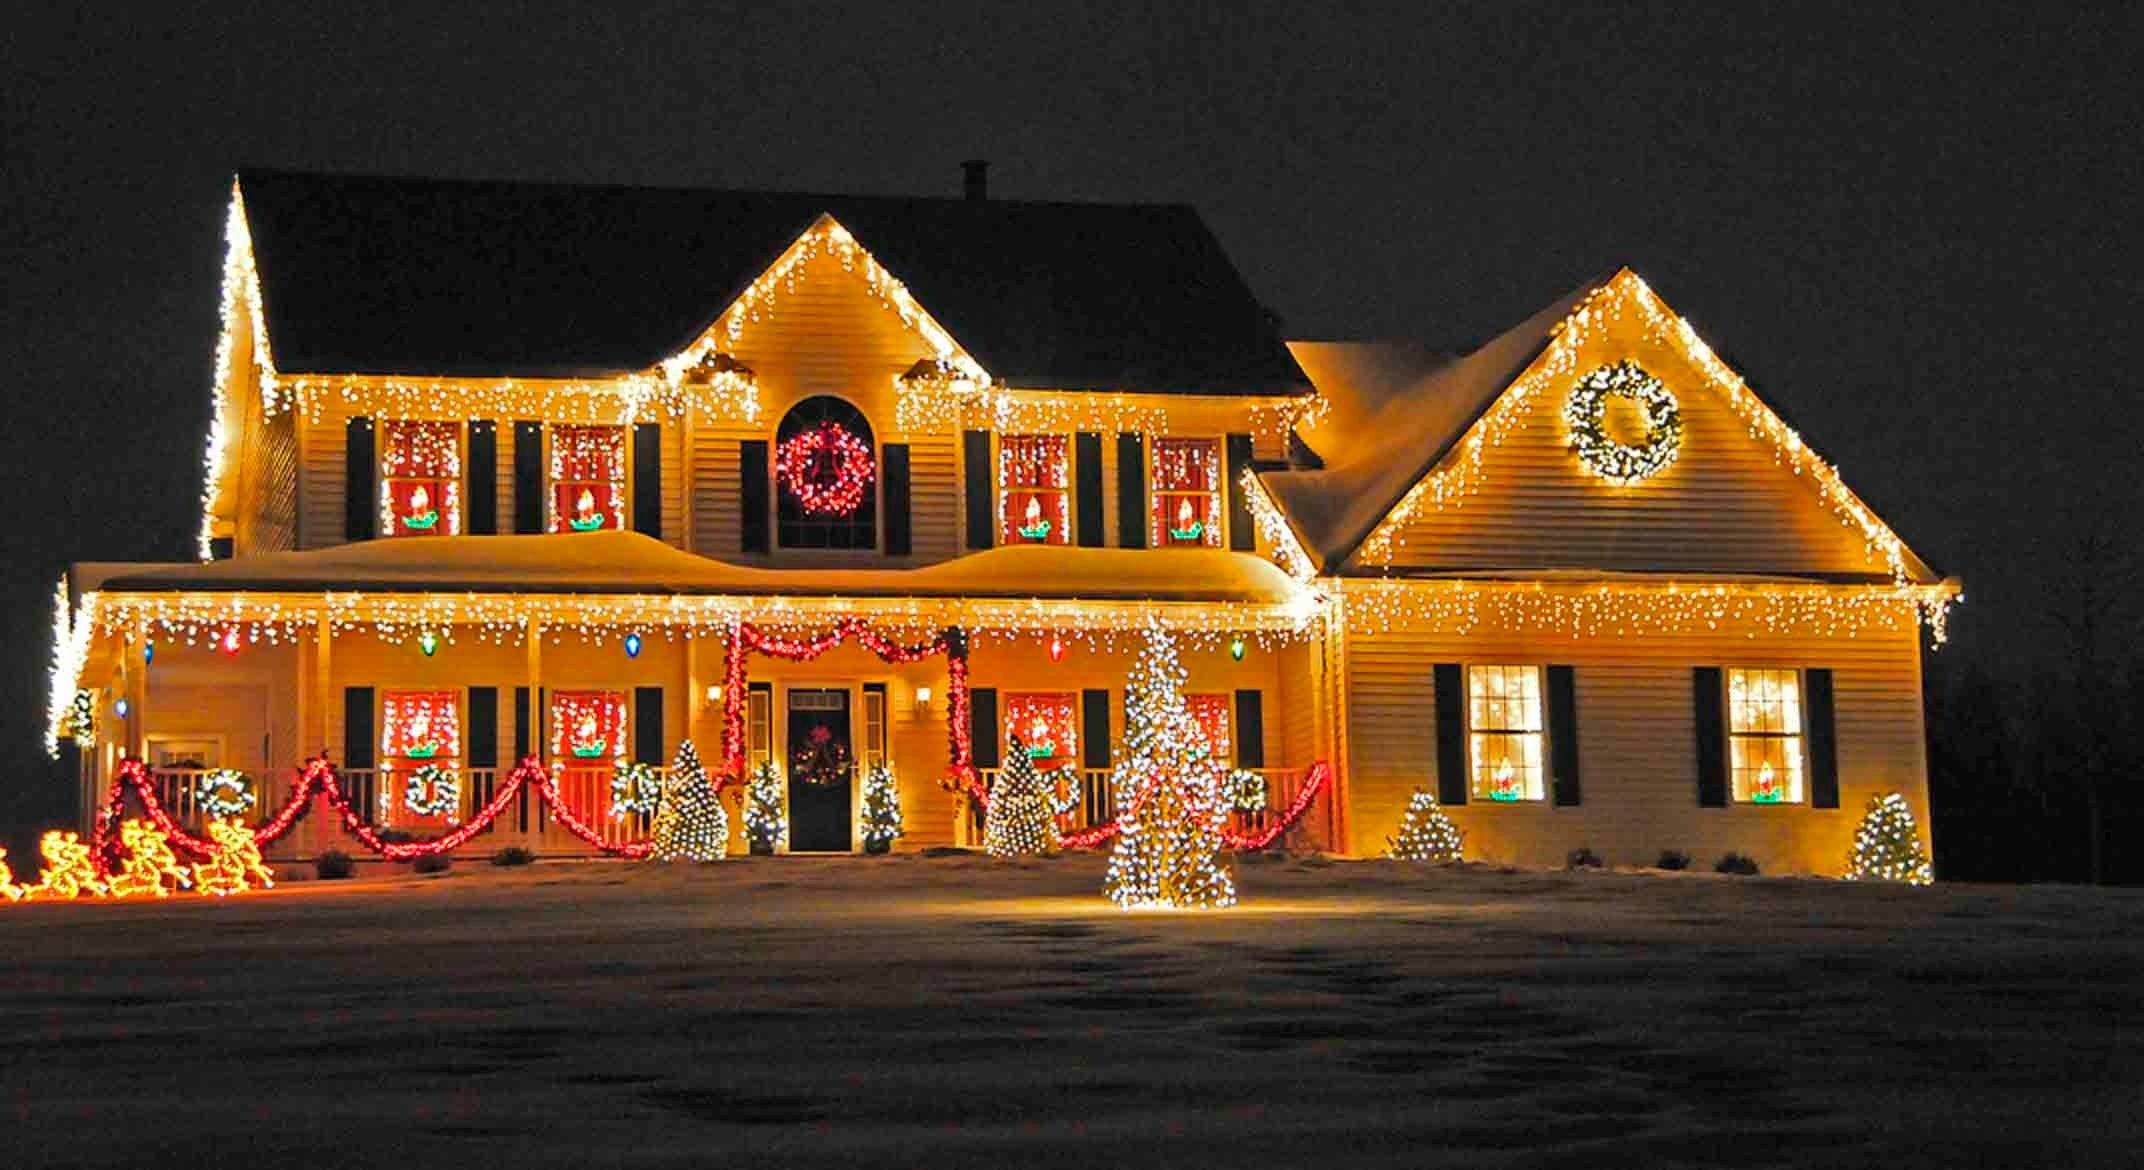 decorationsxmastreedecorationsideasneighborstillhasher